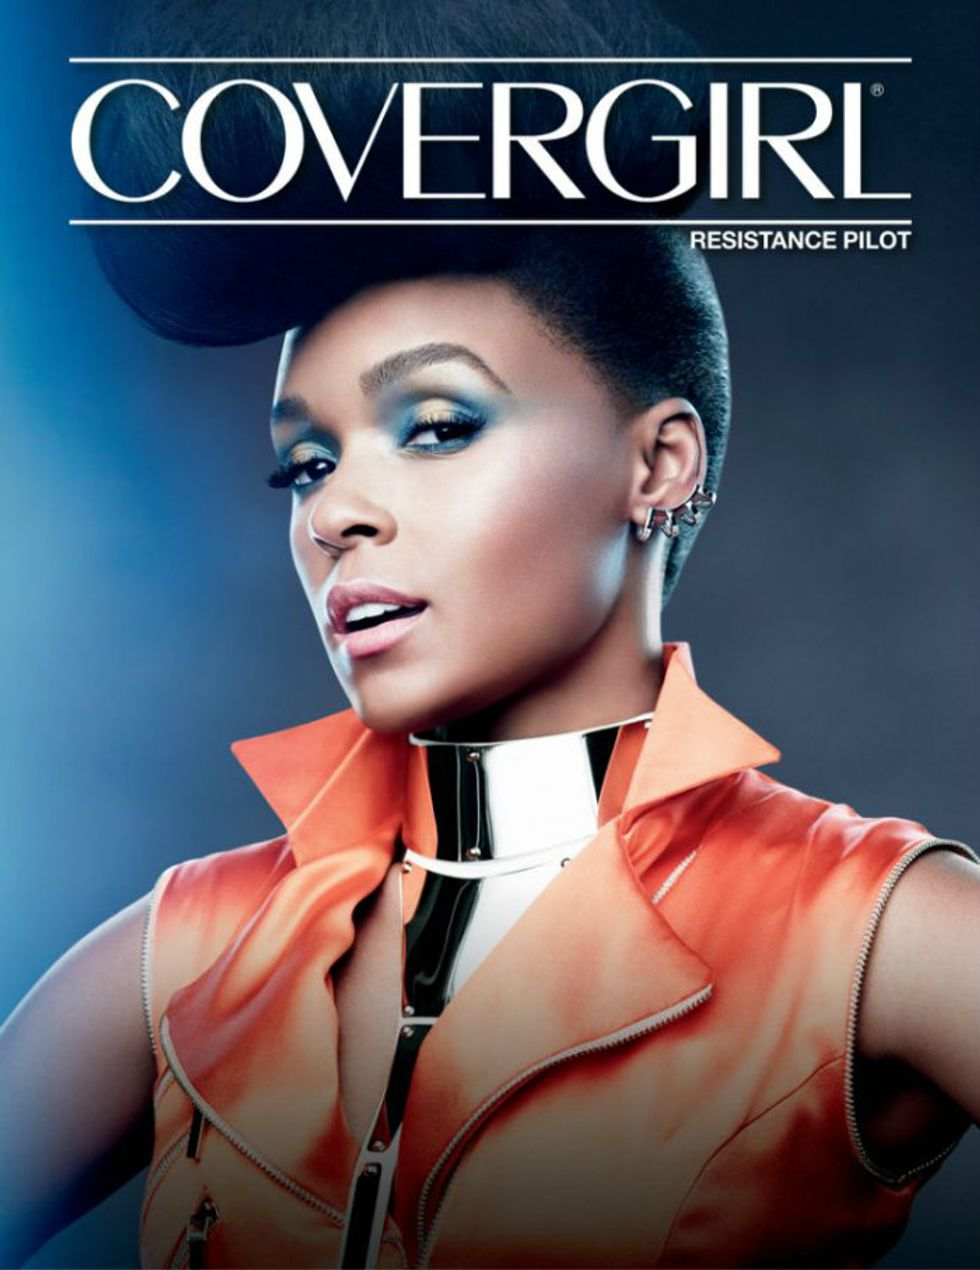 Janelle Monáe and CoverGirl Have a Star Wars Look